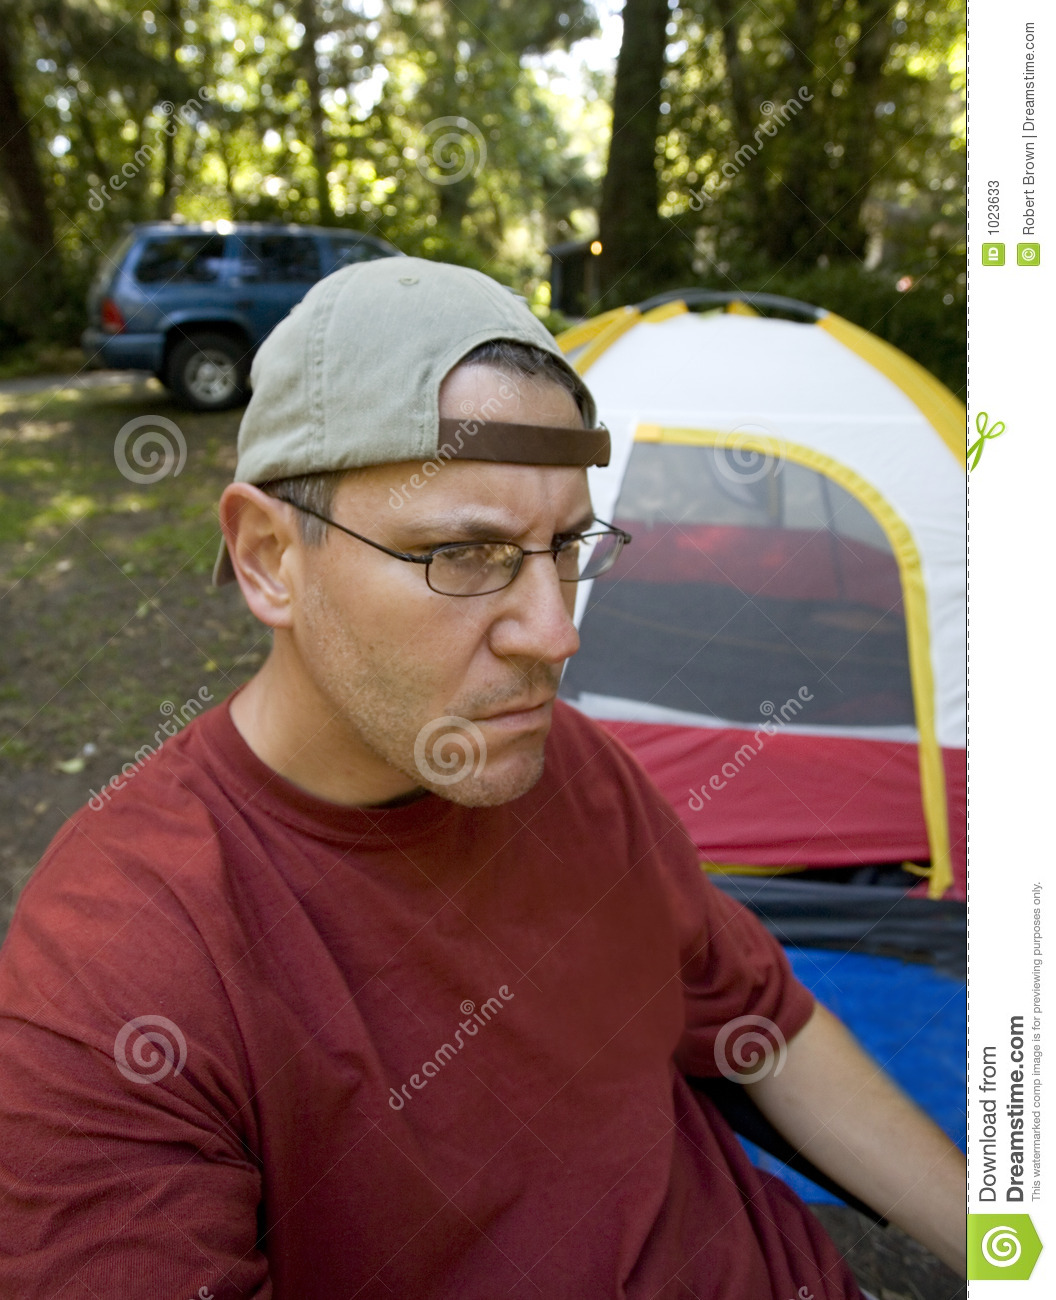 Download Stock Photo Of An Unhappy Camper Image